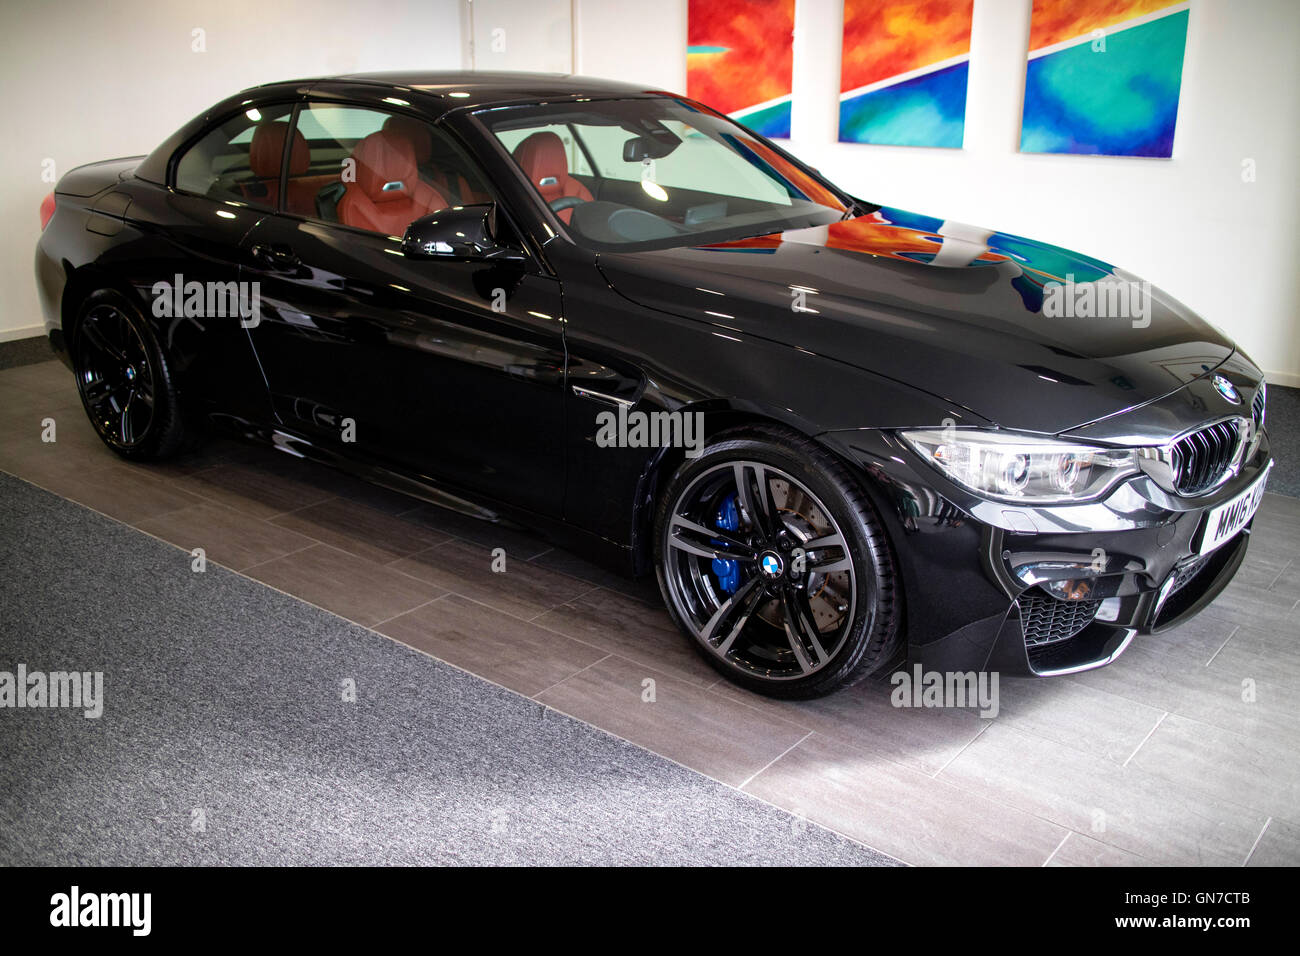 brand new 2016 f83 black bmw m4 convertible 2 door coupe with sakhir stock photo royalty free. Black Bedroom Furniture Sets. Home Design Ideas